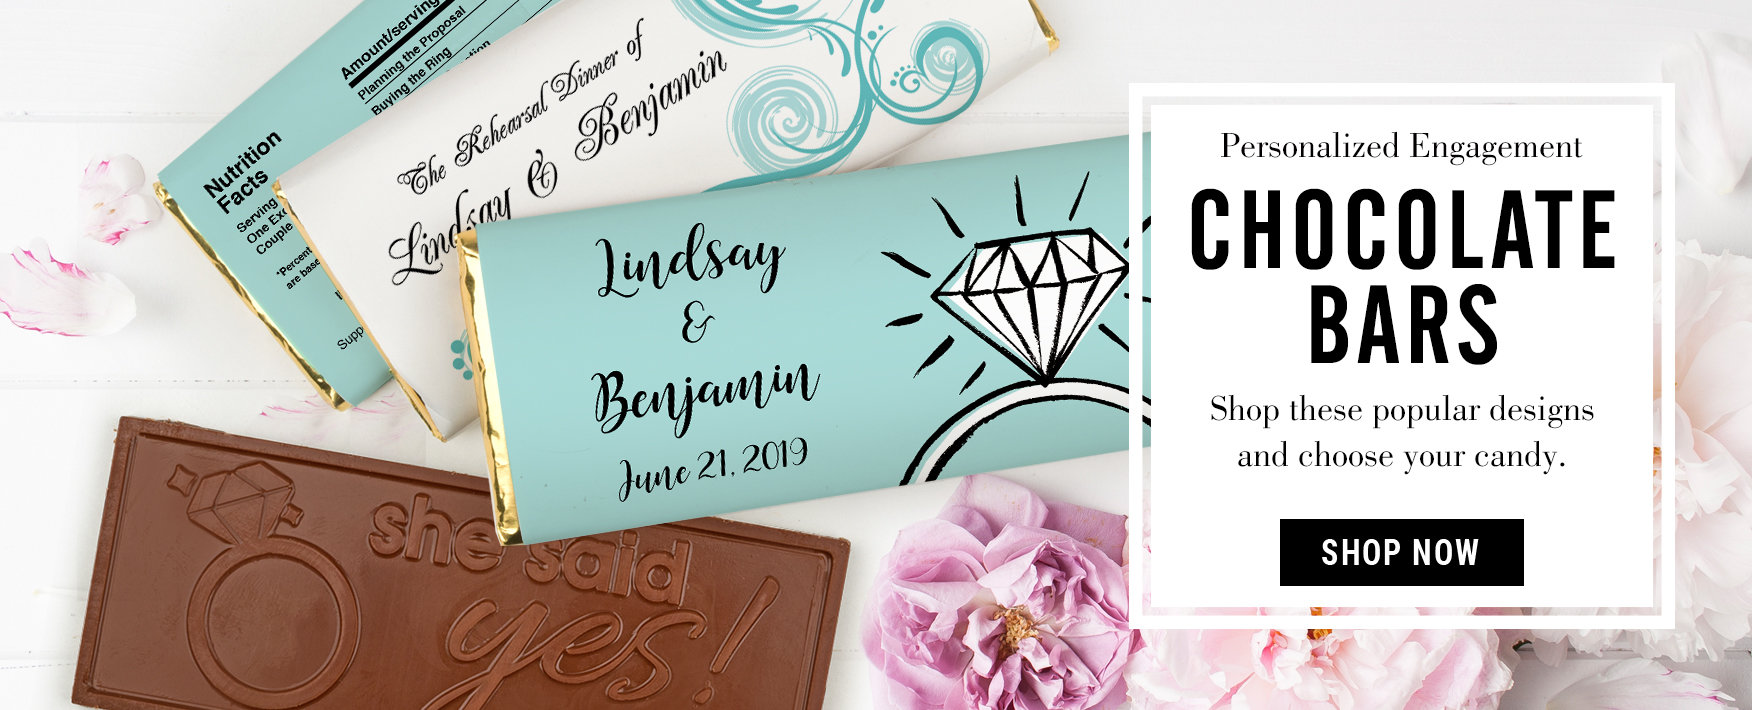 engagement chocolate bars